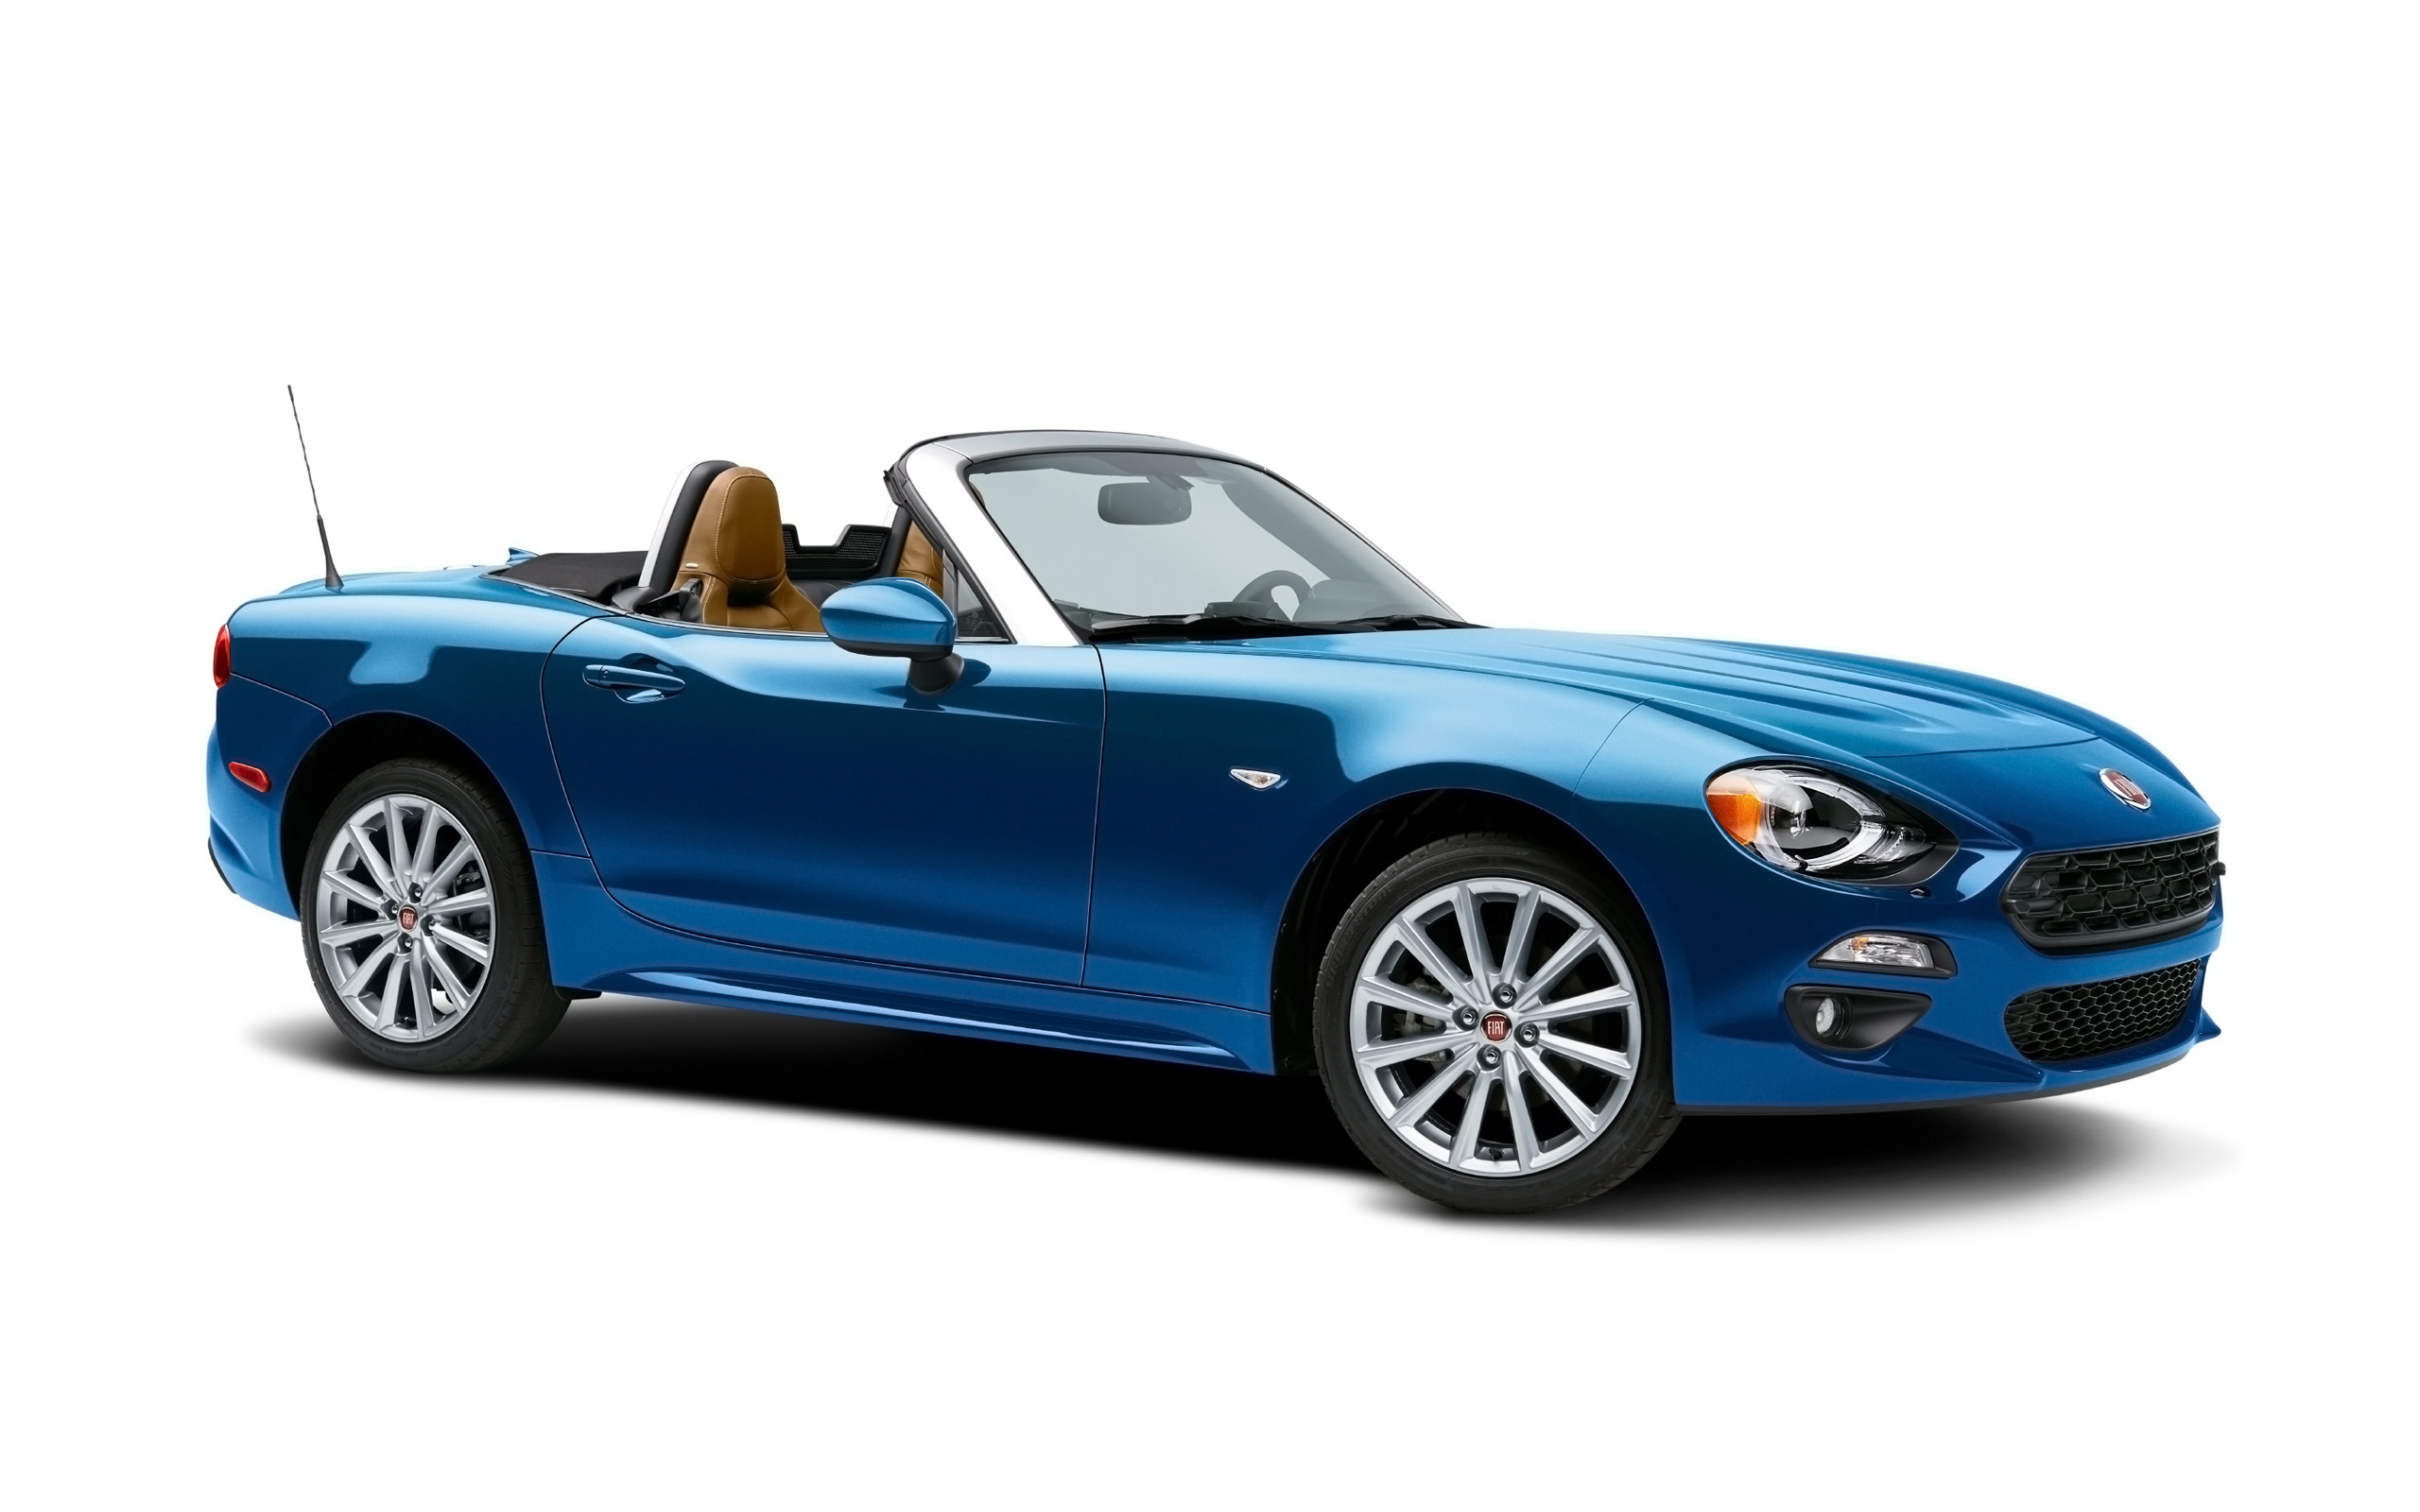 2017 fiat 124 spider wallpaper | hd car wallpapers | id #6051